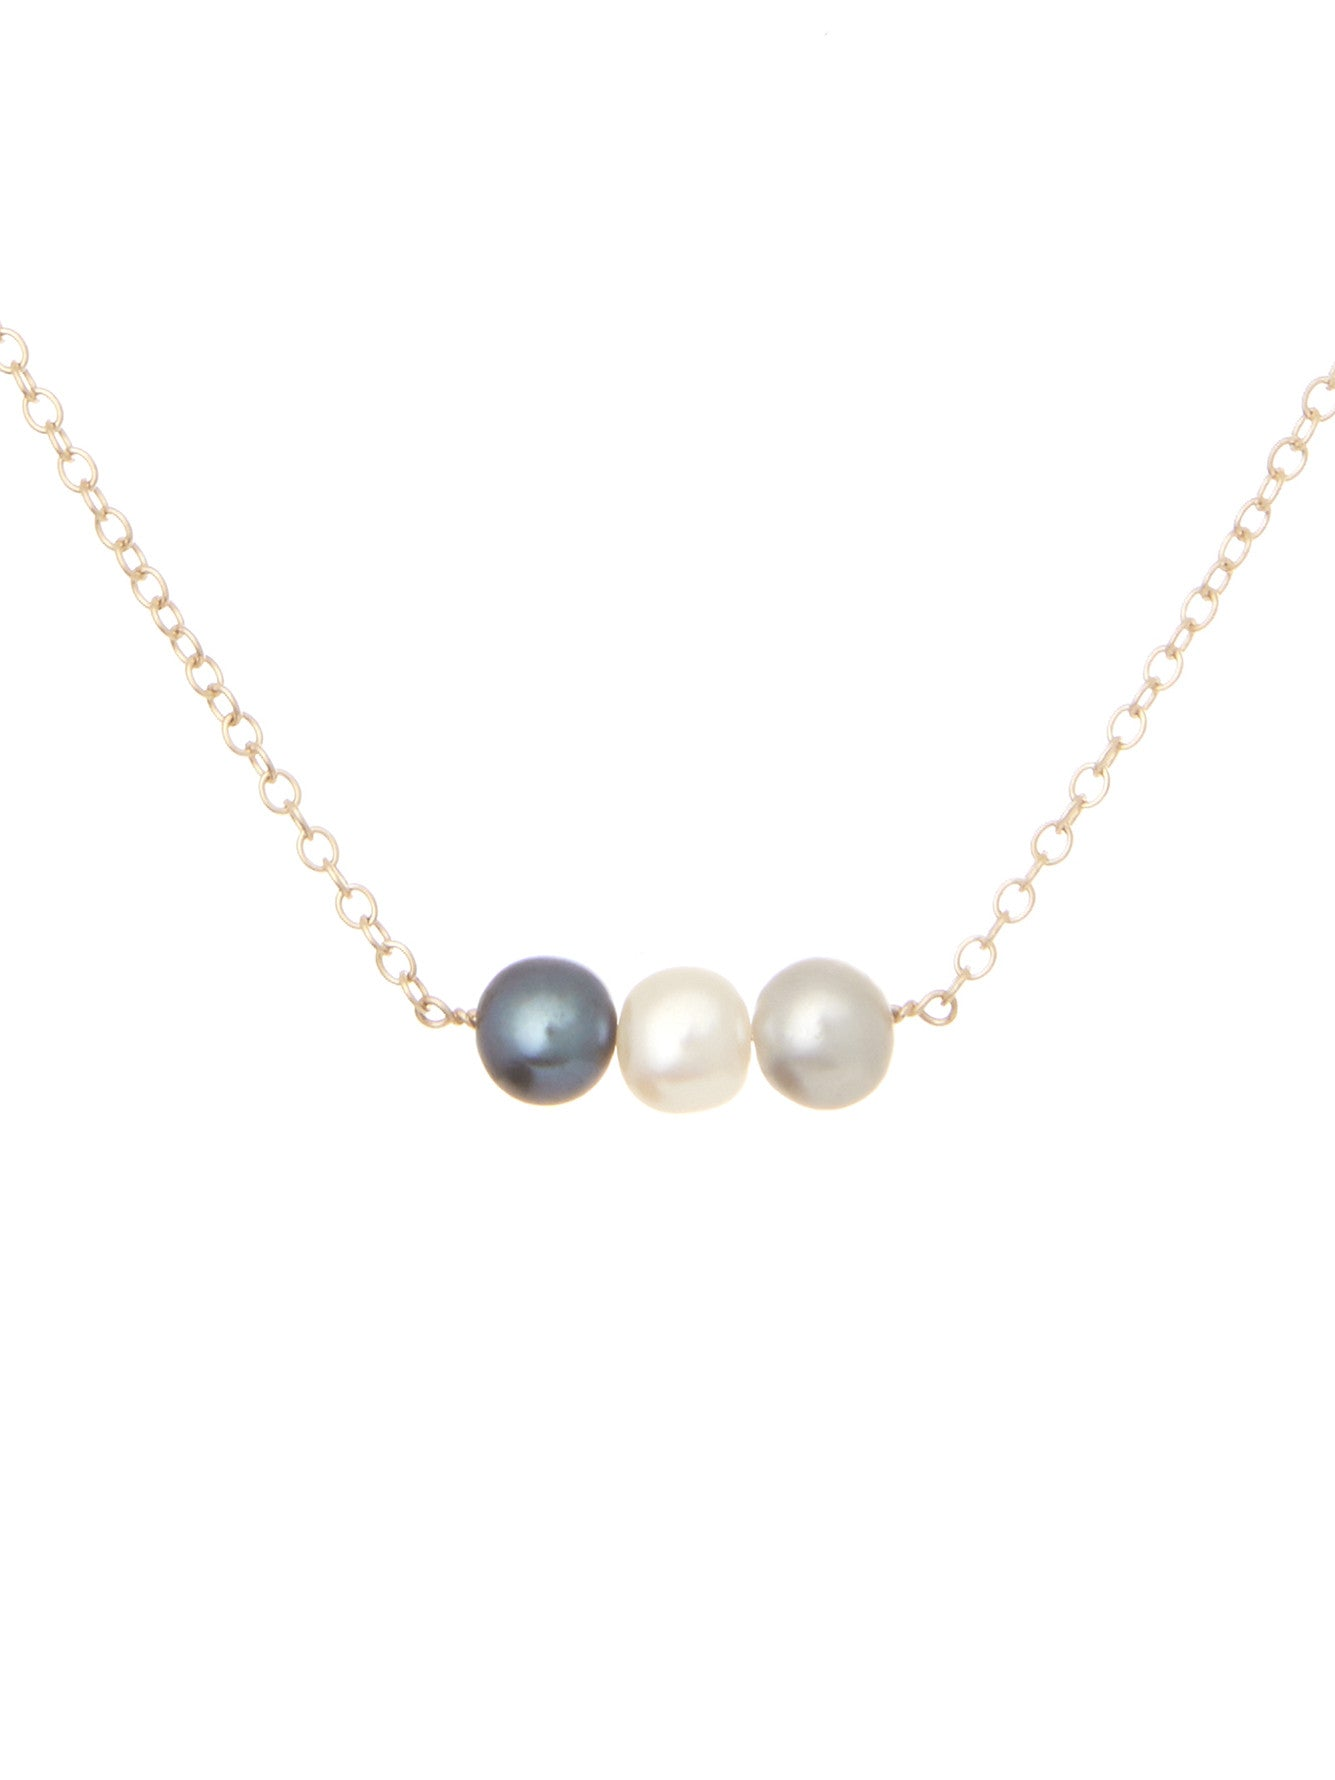 pearl and rock necklace birks en silver